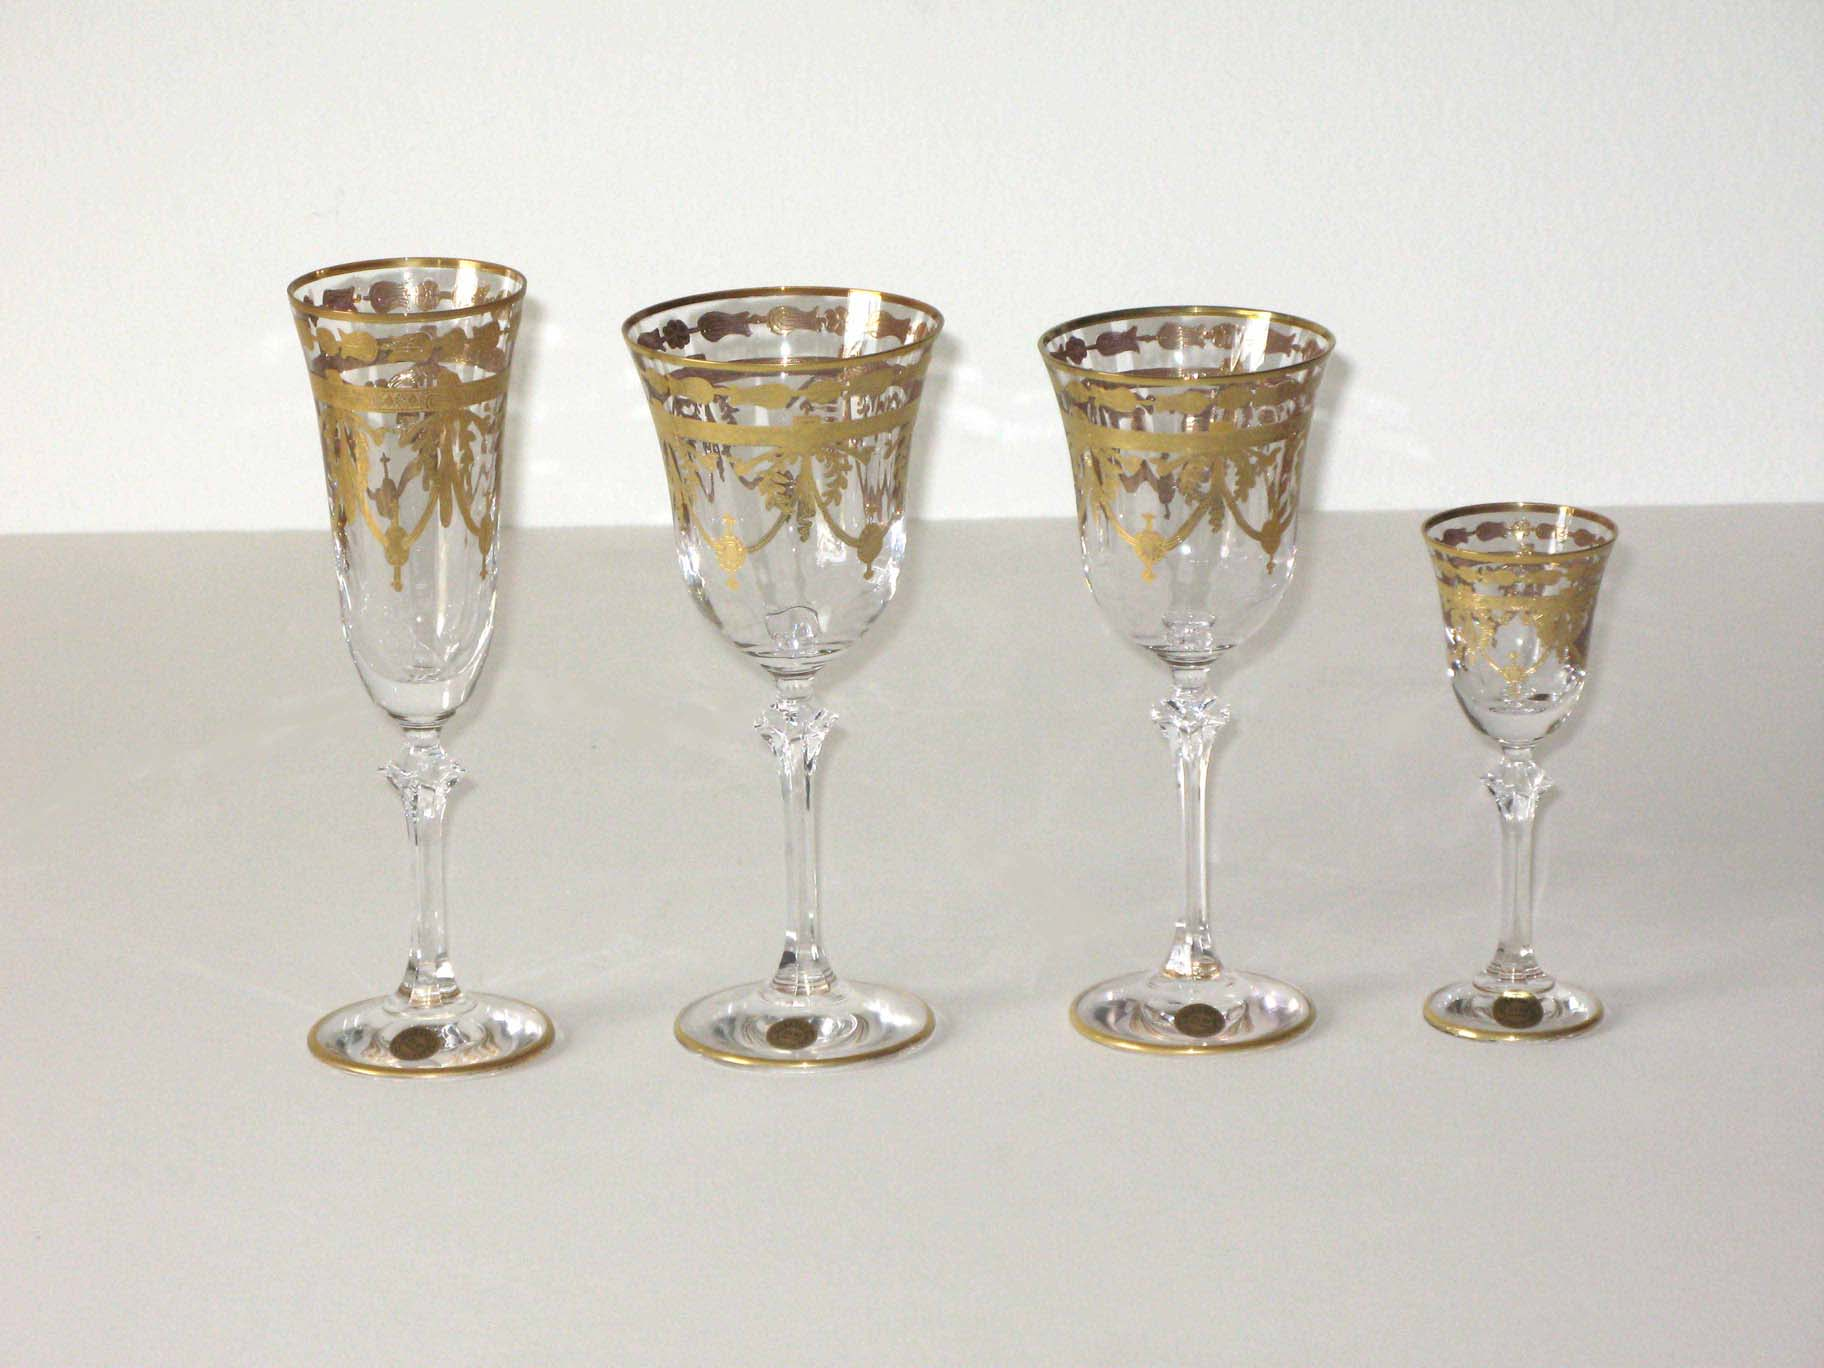 Kt Gold Murano Glass Glasses